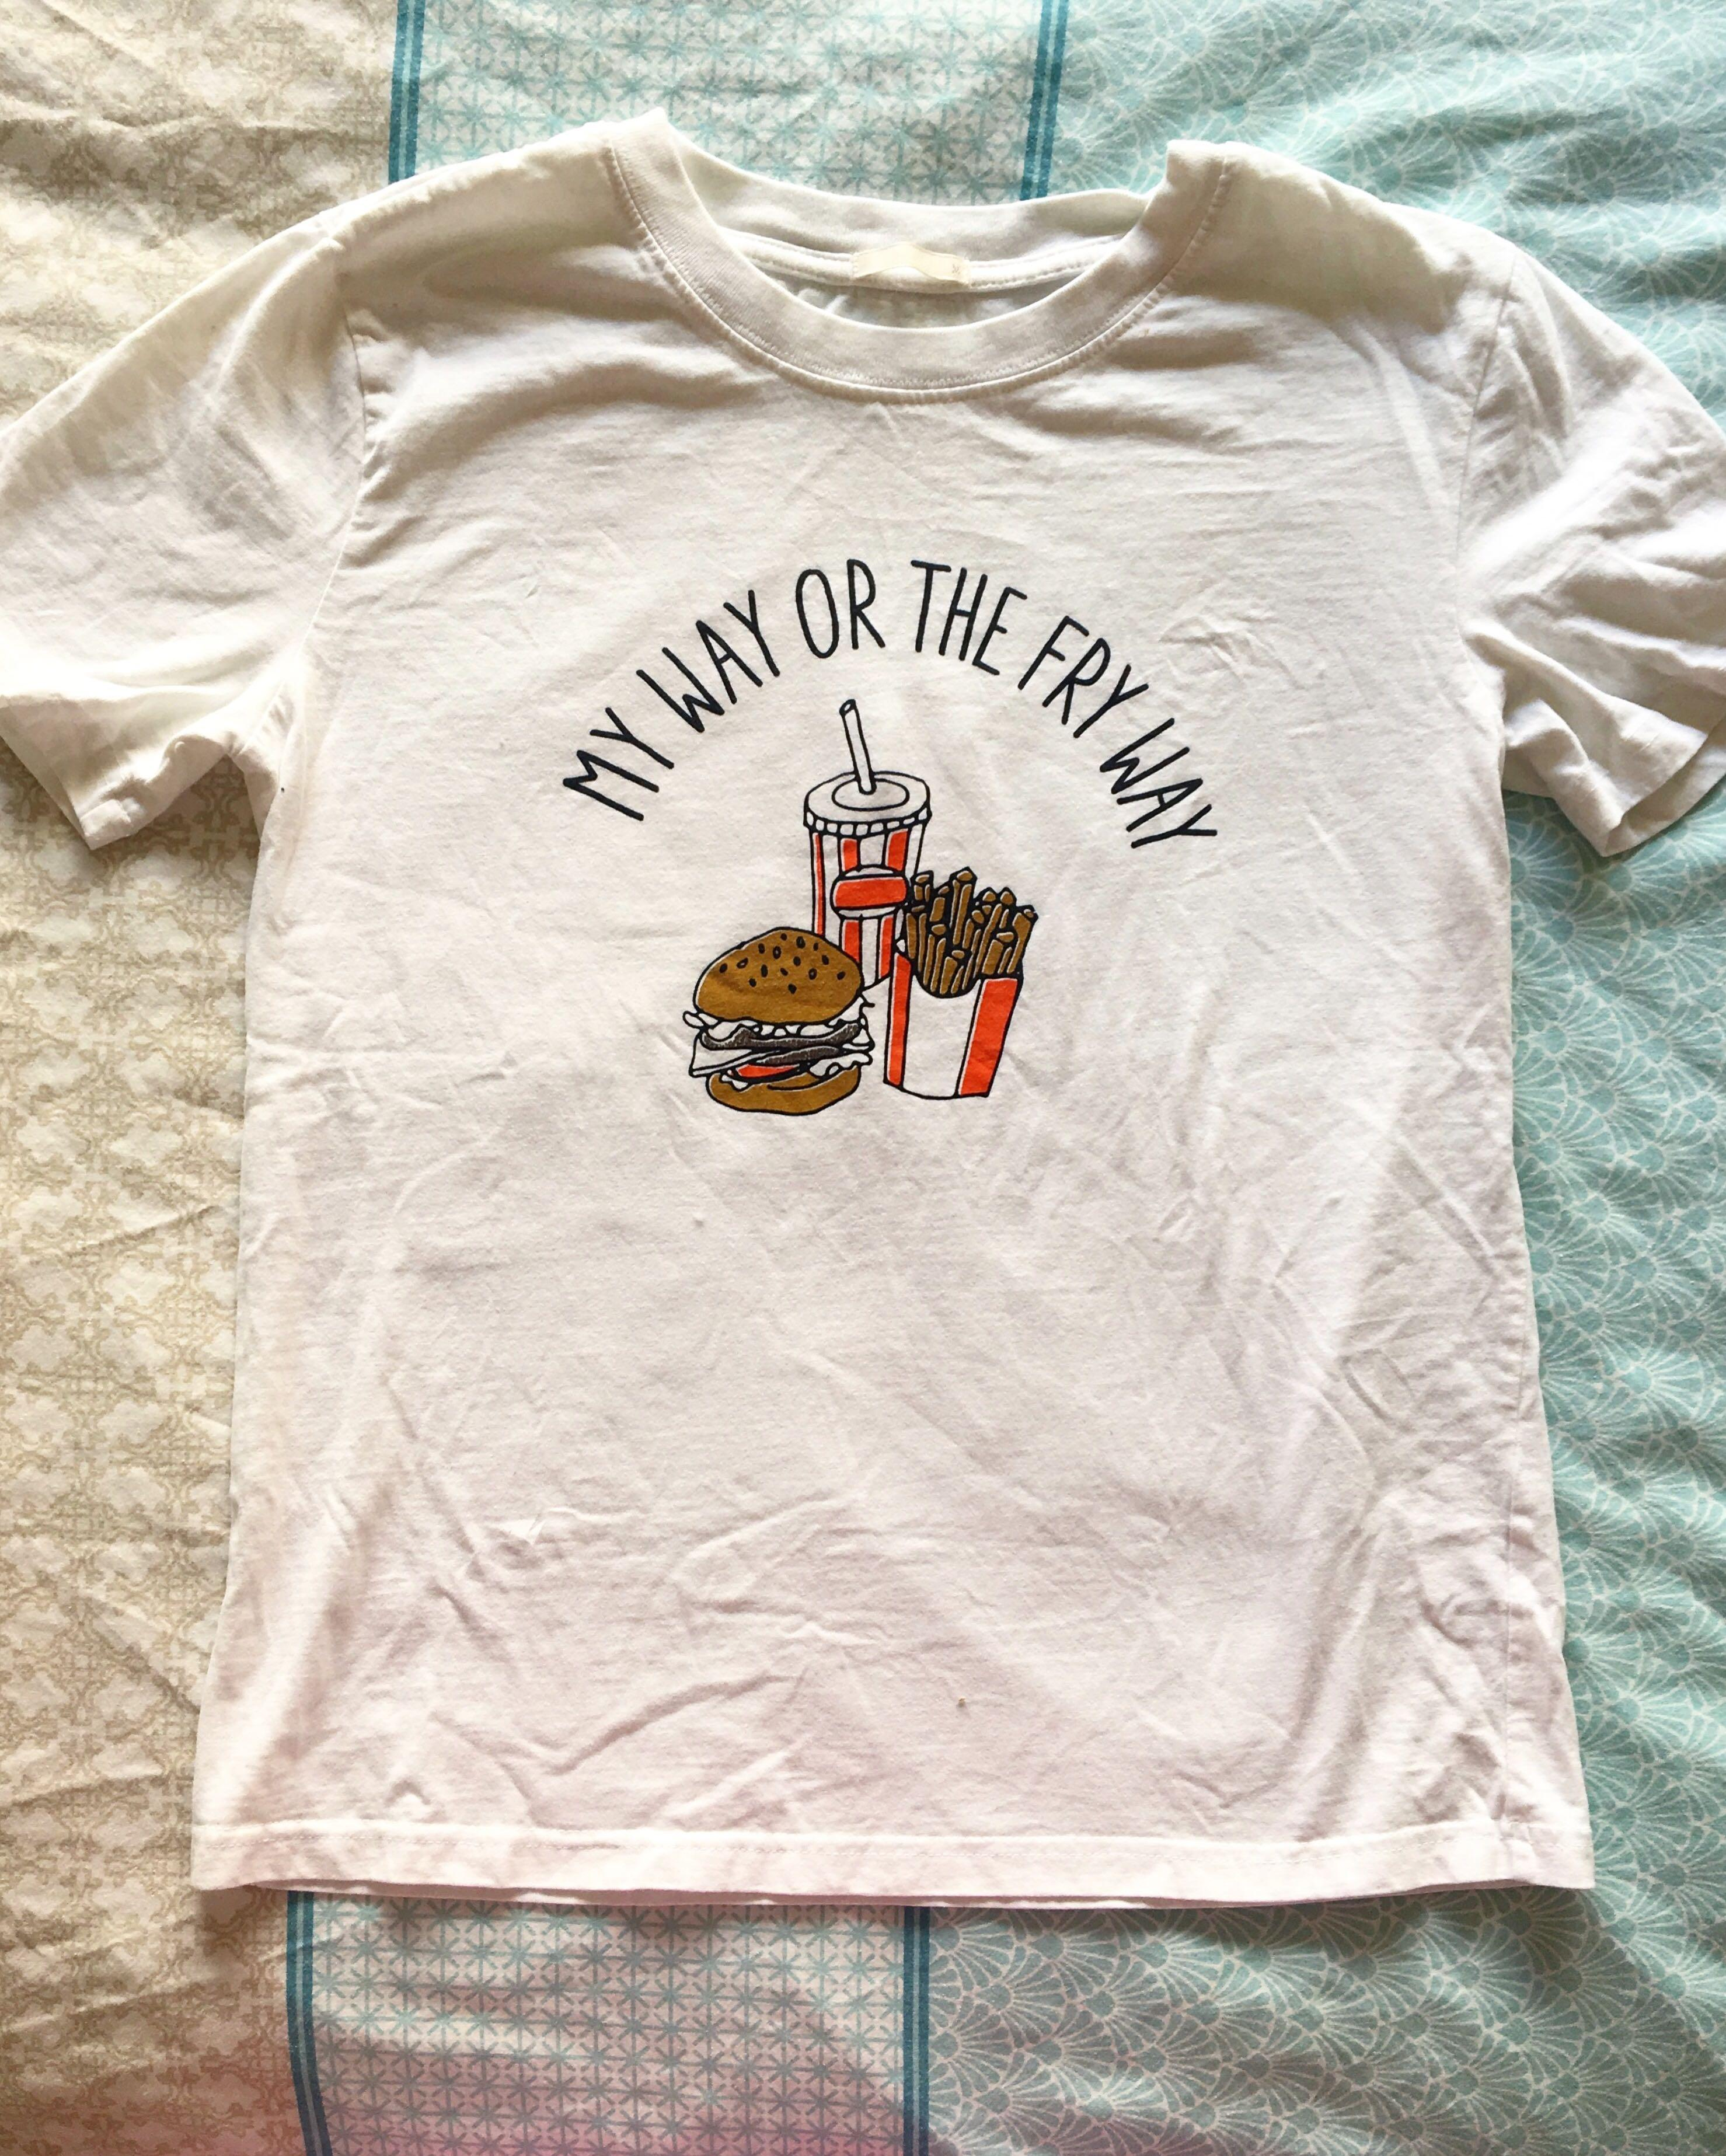 Graphic T for $5